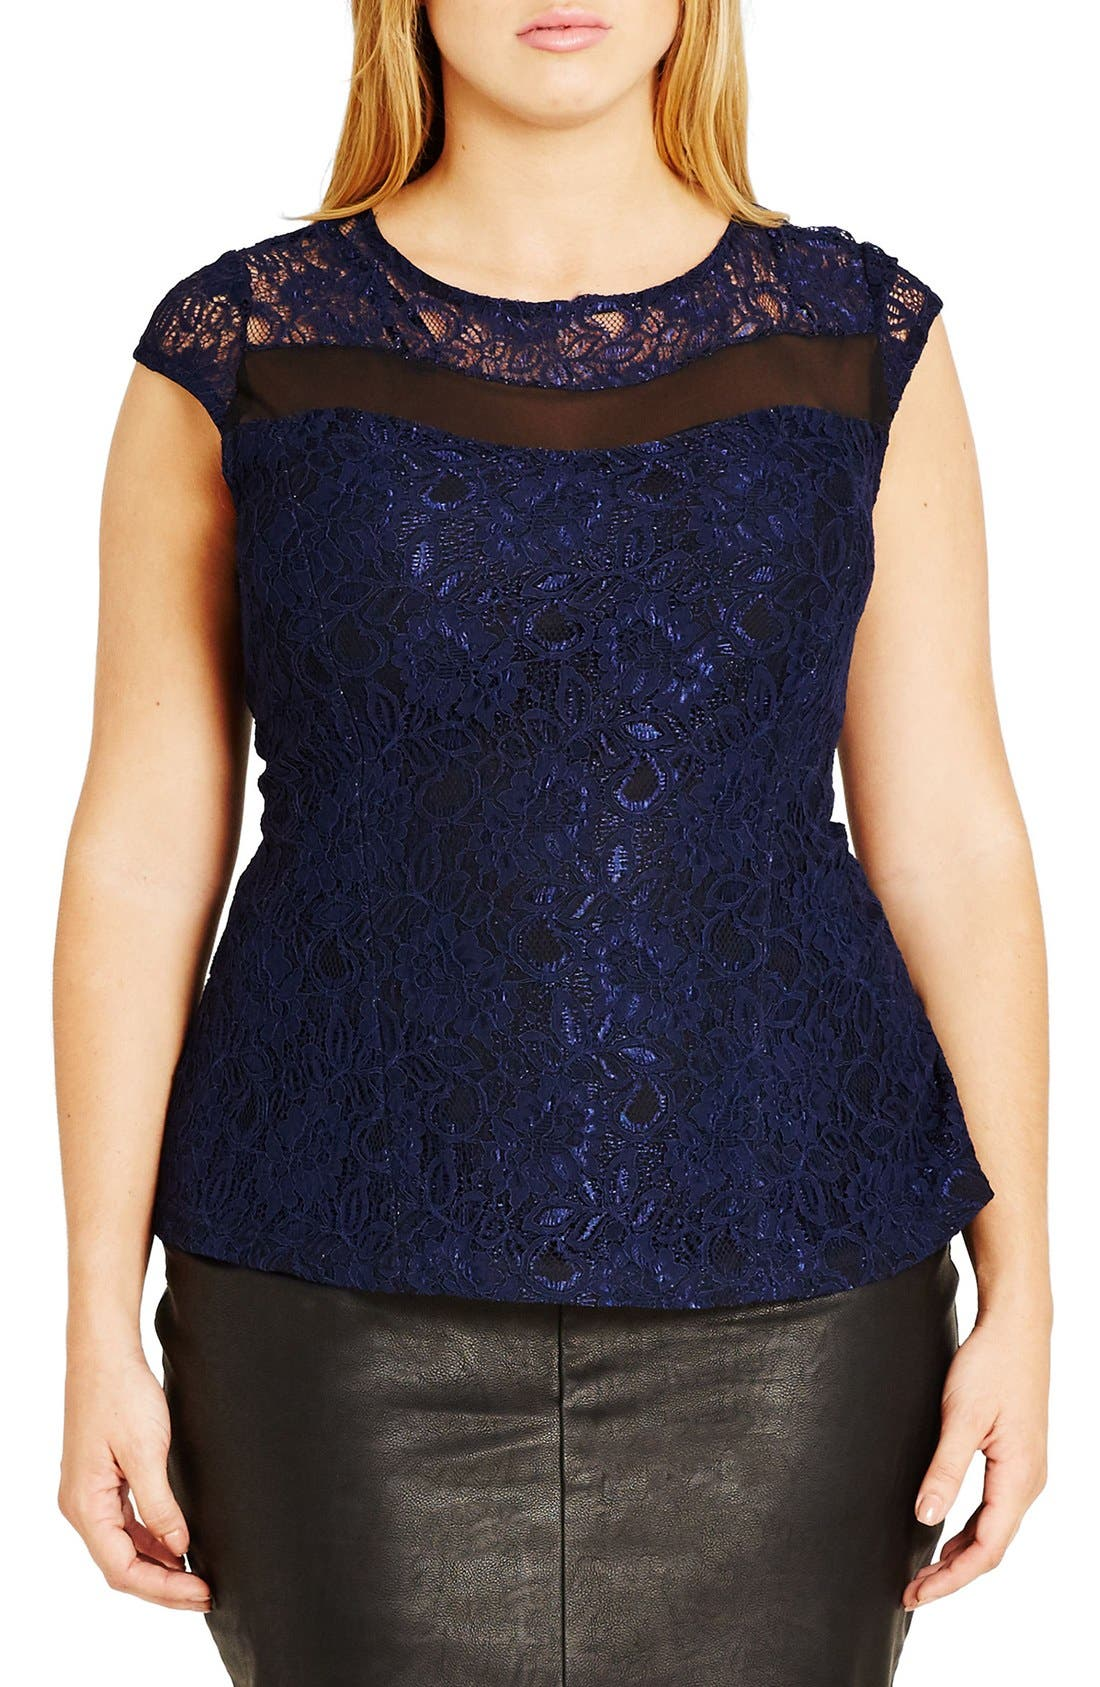 CITY CHIC Mysterious Cap Sleeve Lace Top